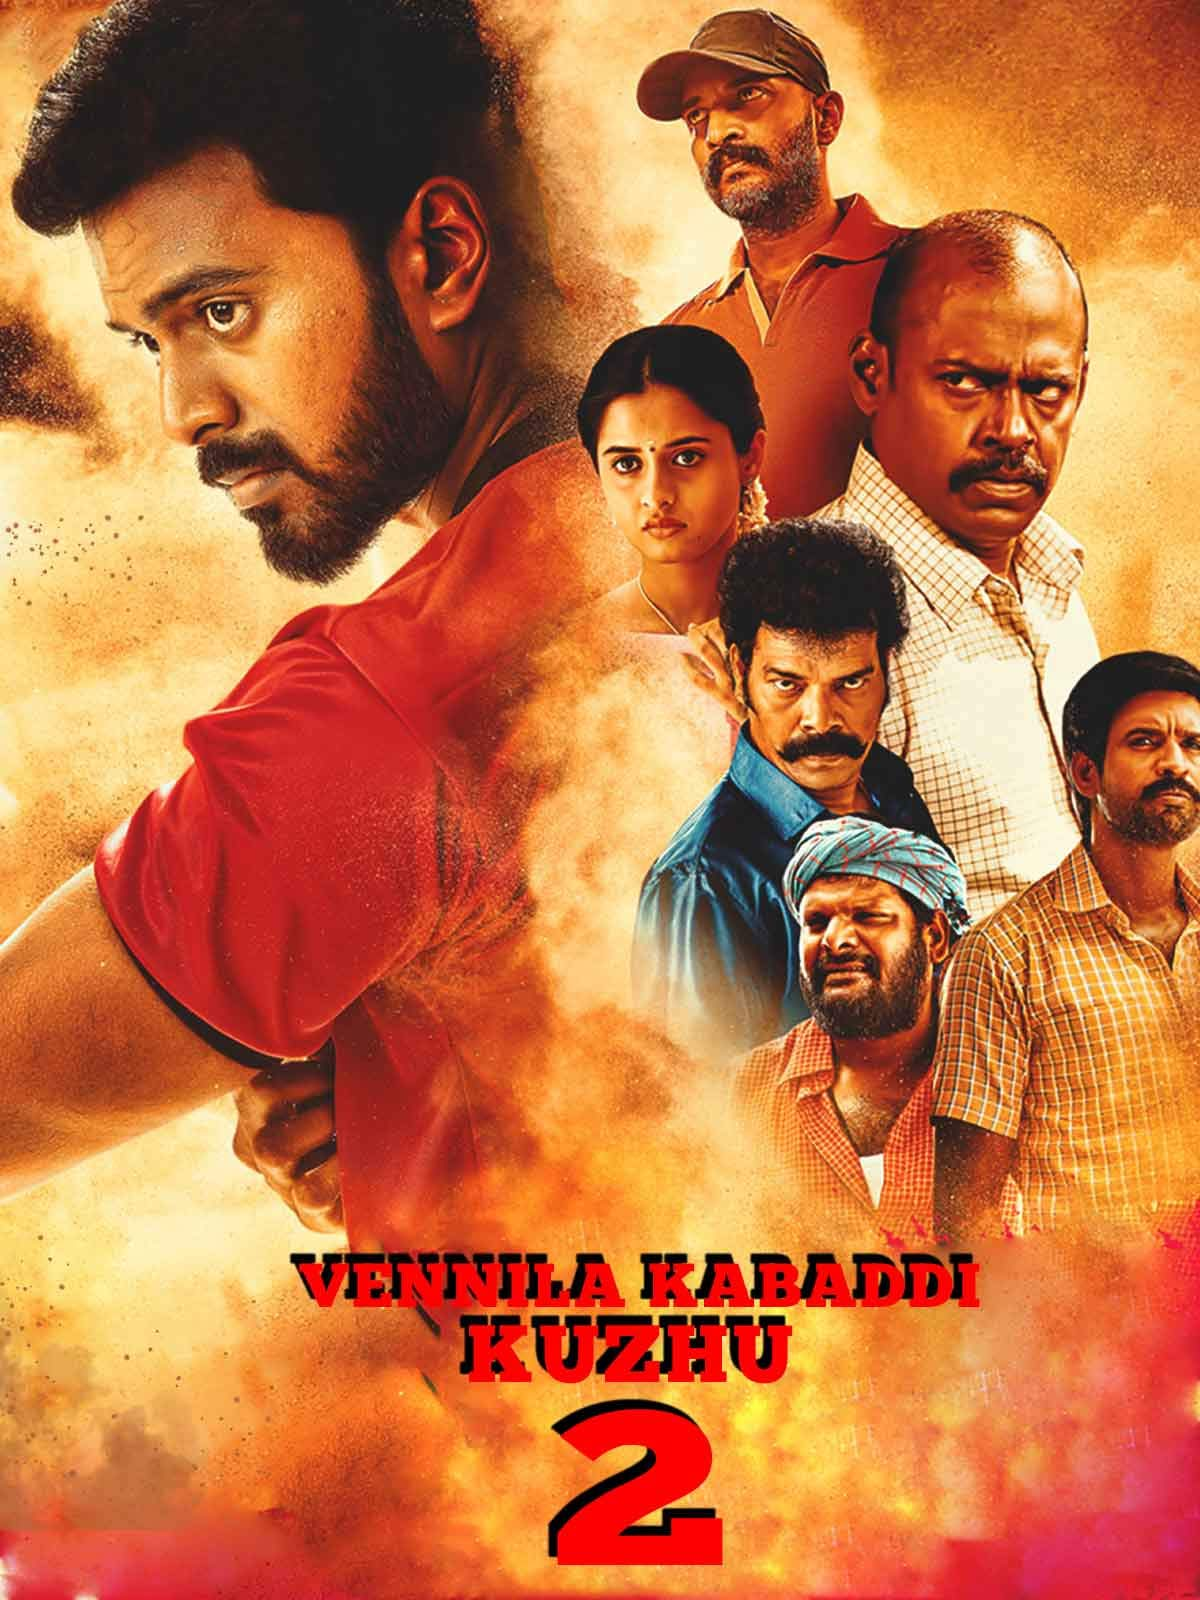 Vennila Kabaddi Kuzhu 2 on Amazon Prime Video UK